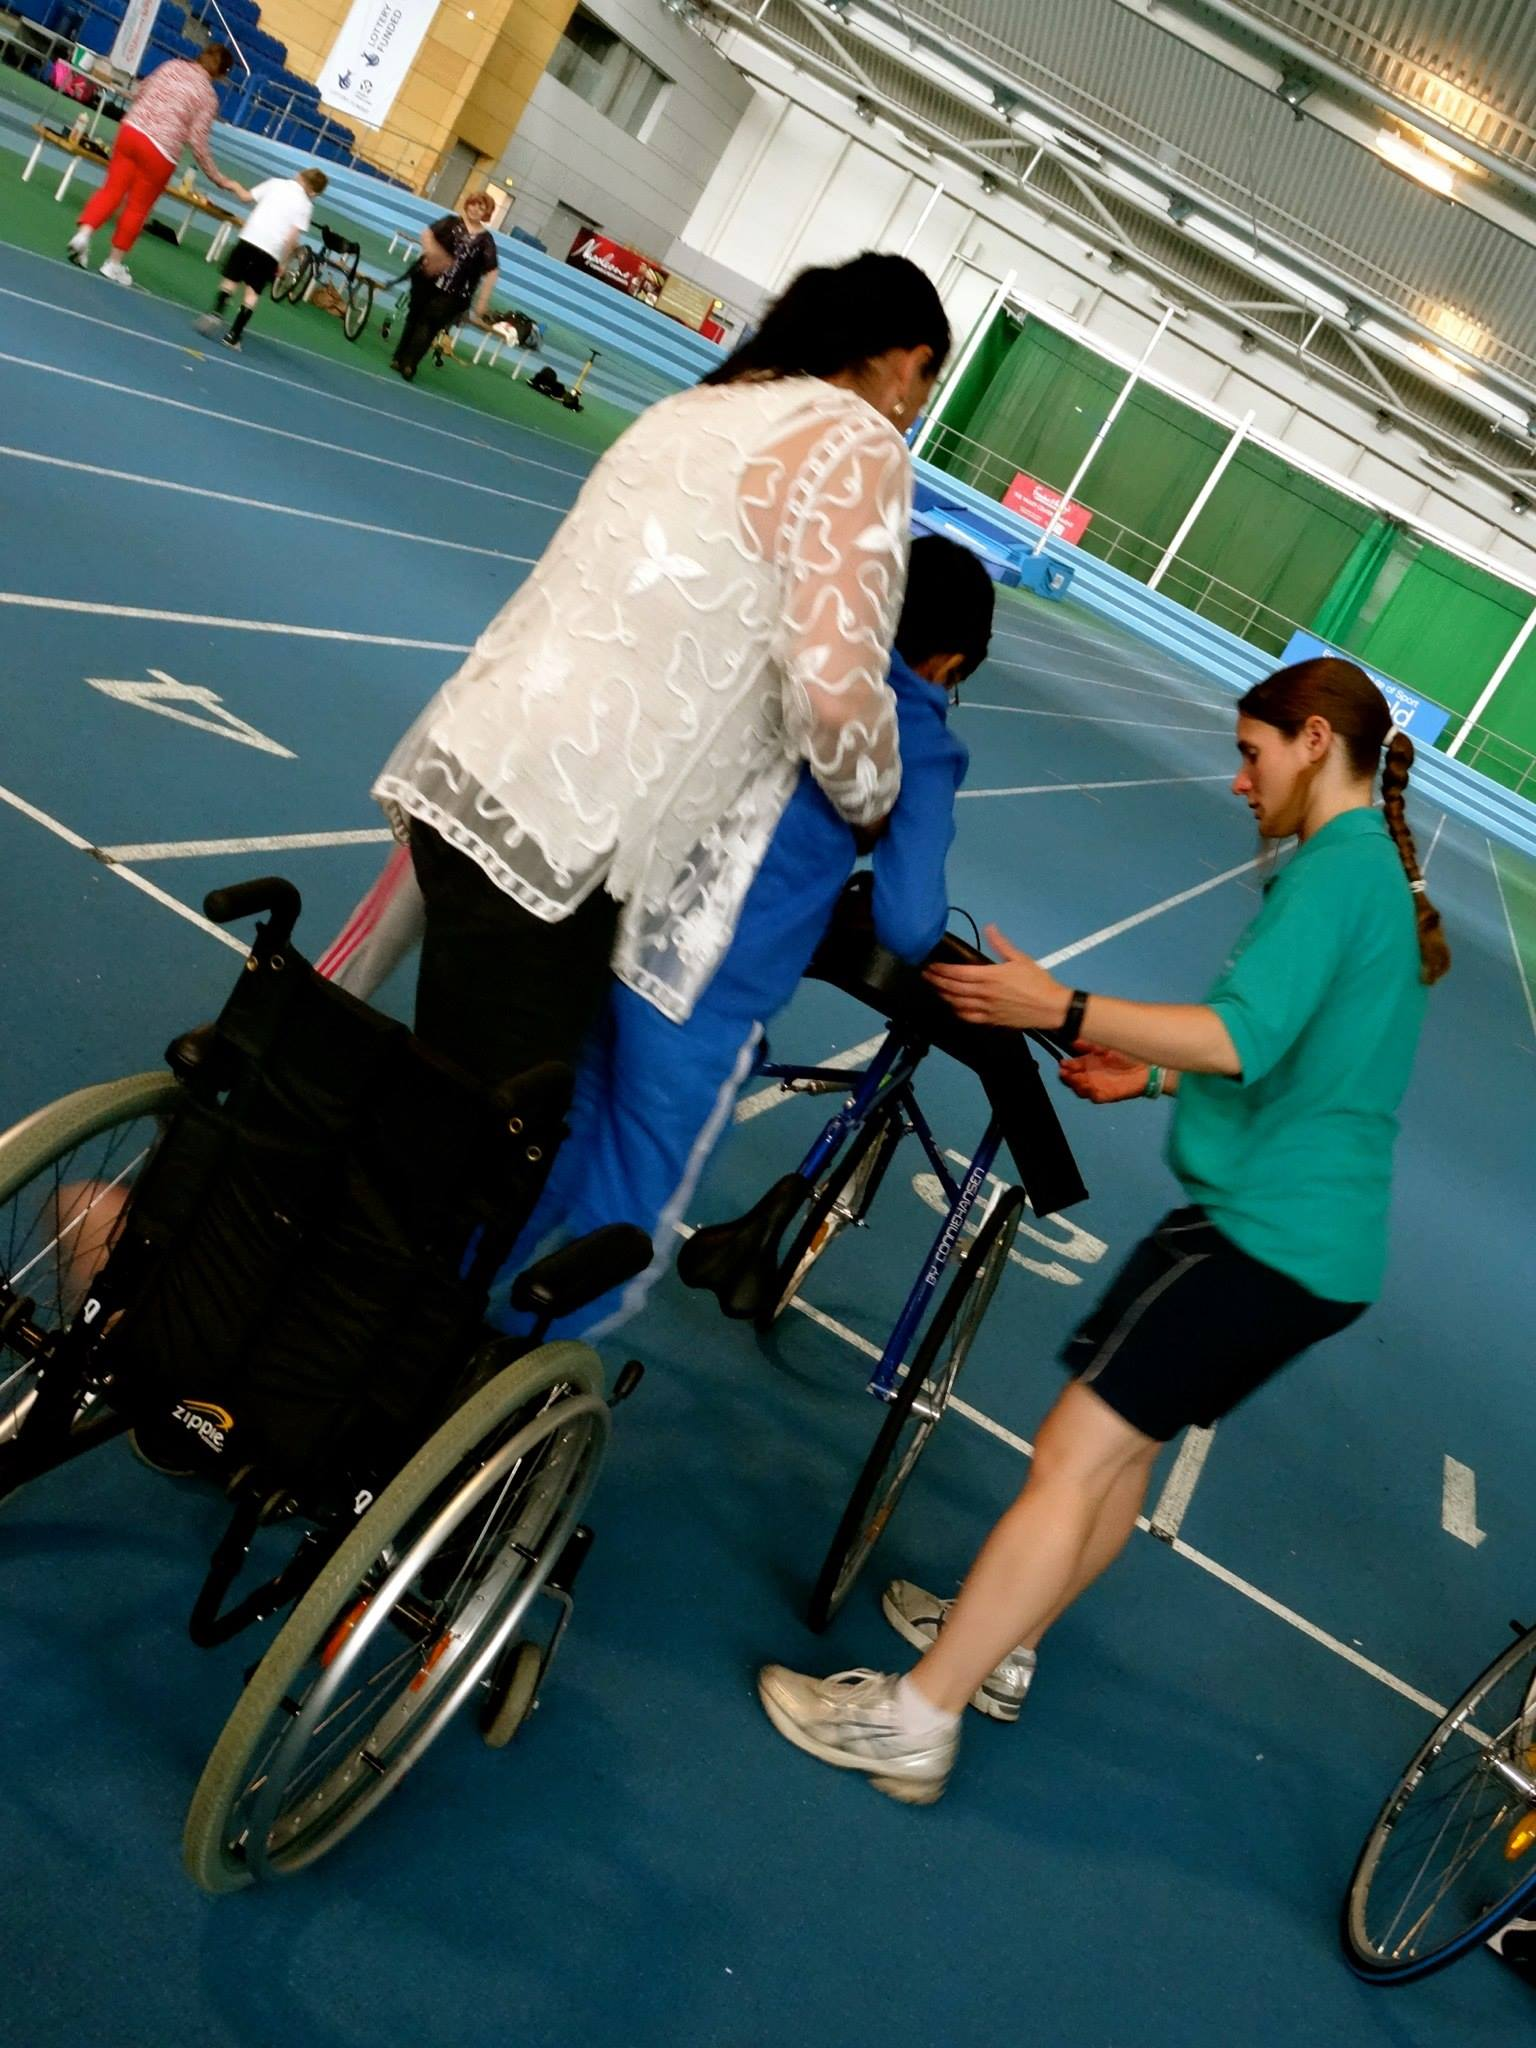 From my wheelchair ... to the track!